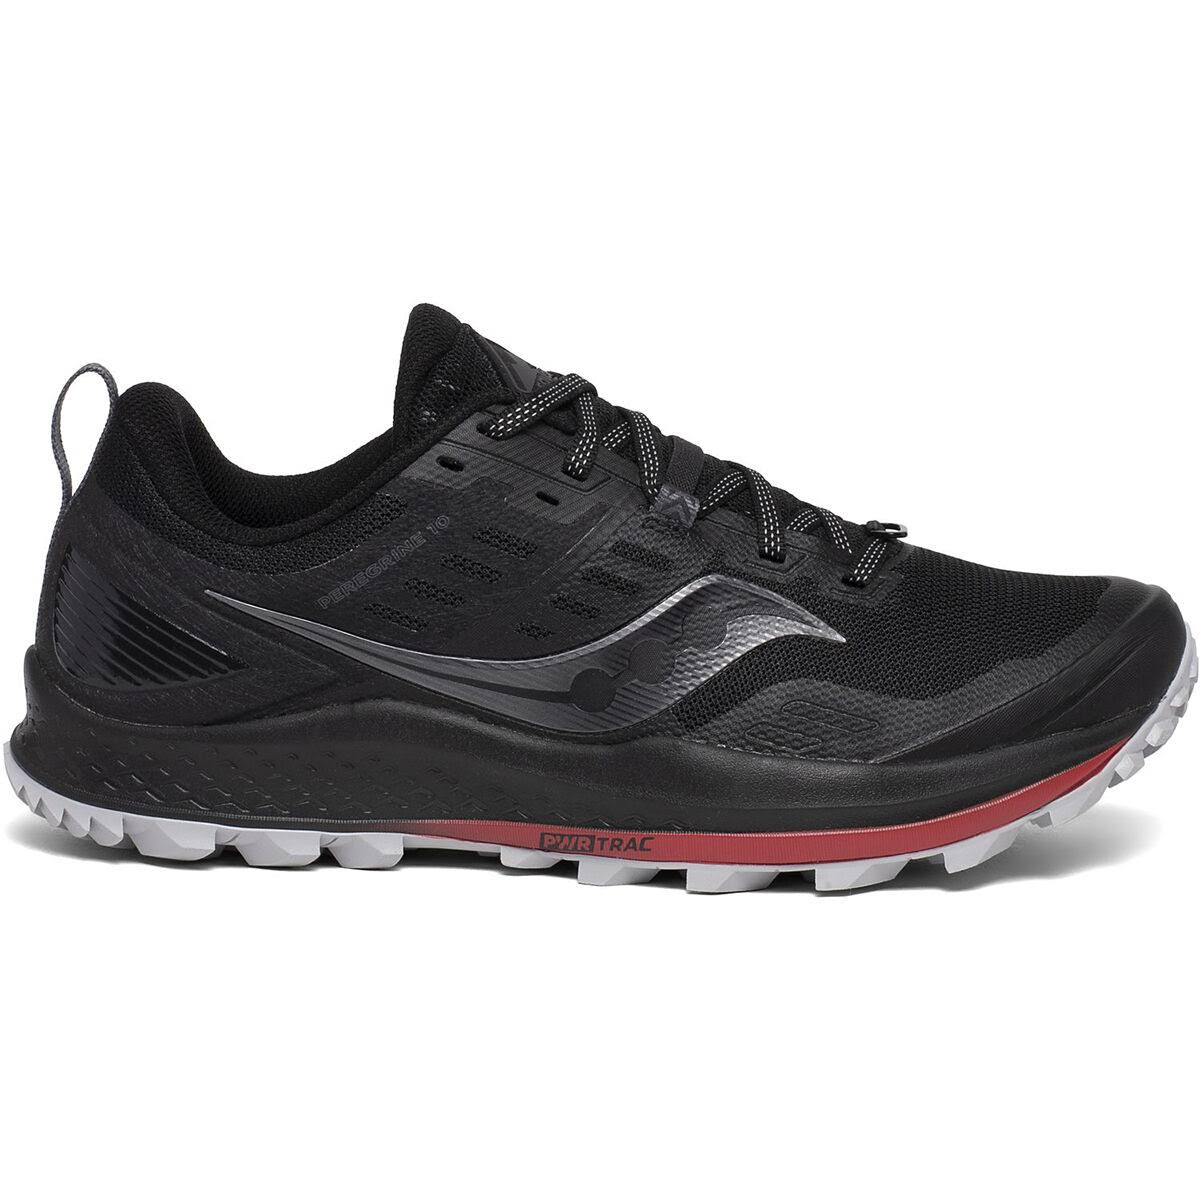 Saucony Peregrine 10 Trail Running Shoes - Black - 8.5